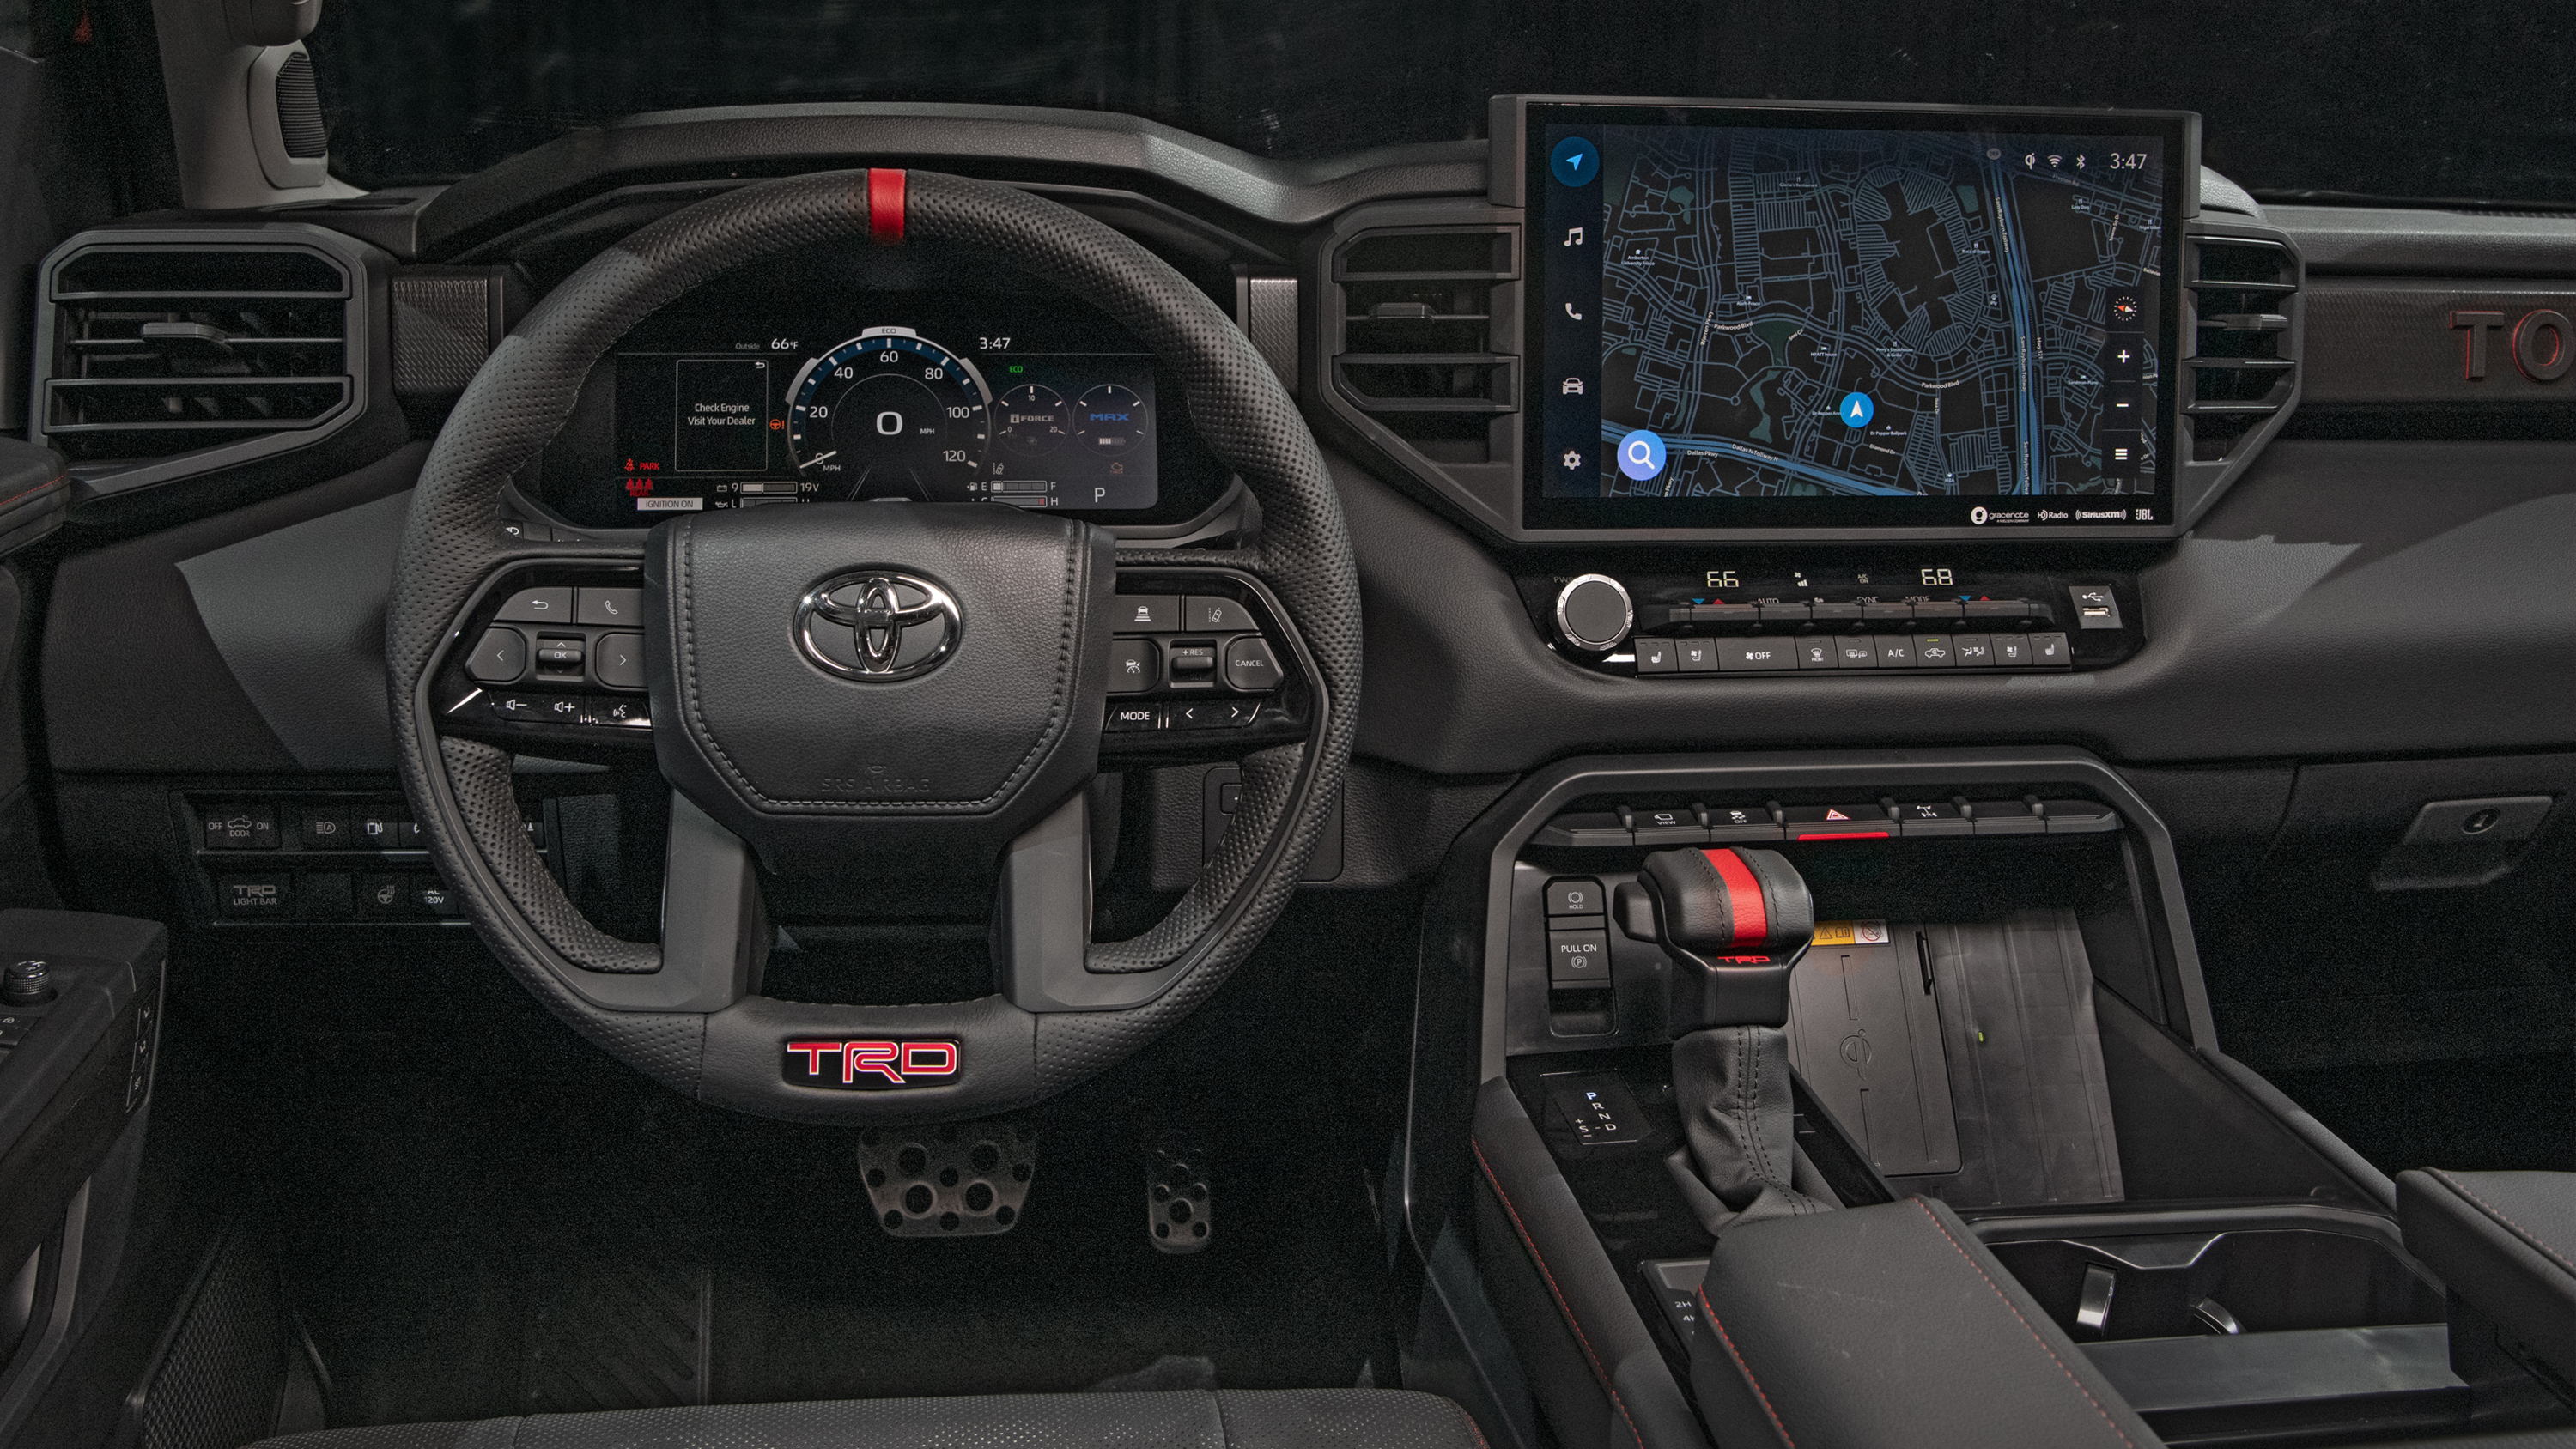 Video: 2022 Toyota Tundra first look: Let's check out the tech